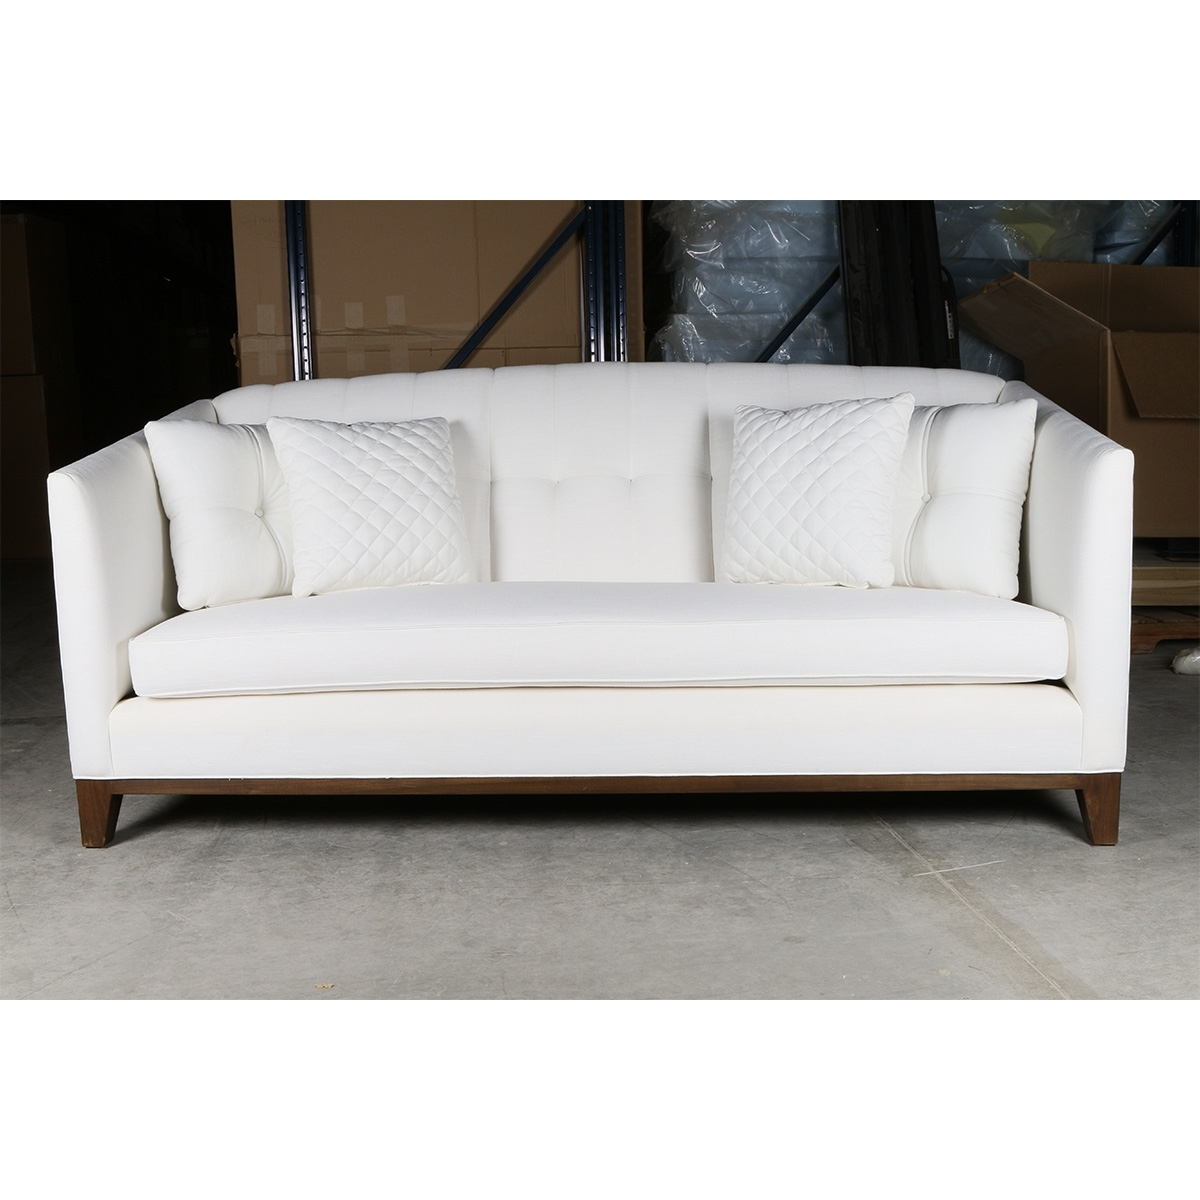 "Tufted Linen Sofas Throughout Well Liked Lois Tufted Linen Sofa 84"" – South Cone Home Furniture (View 17 of 20)"